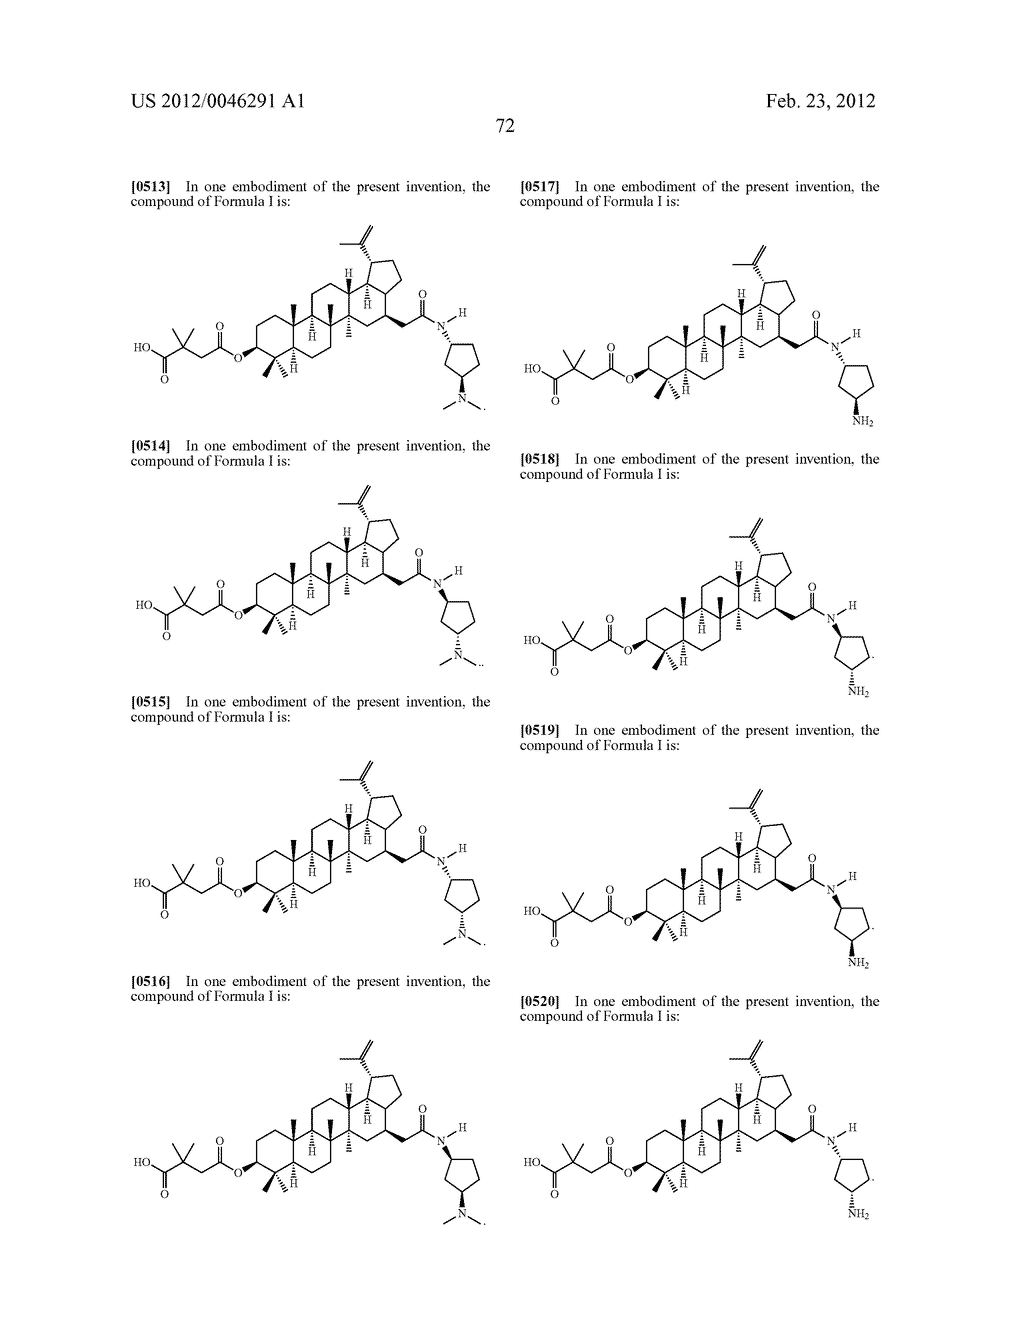 Extended Triterpene Derivatives - diagram, schematic, and image 74